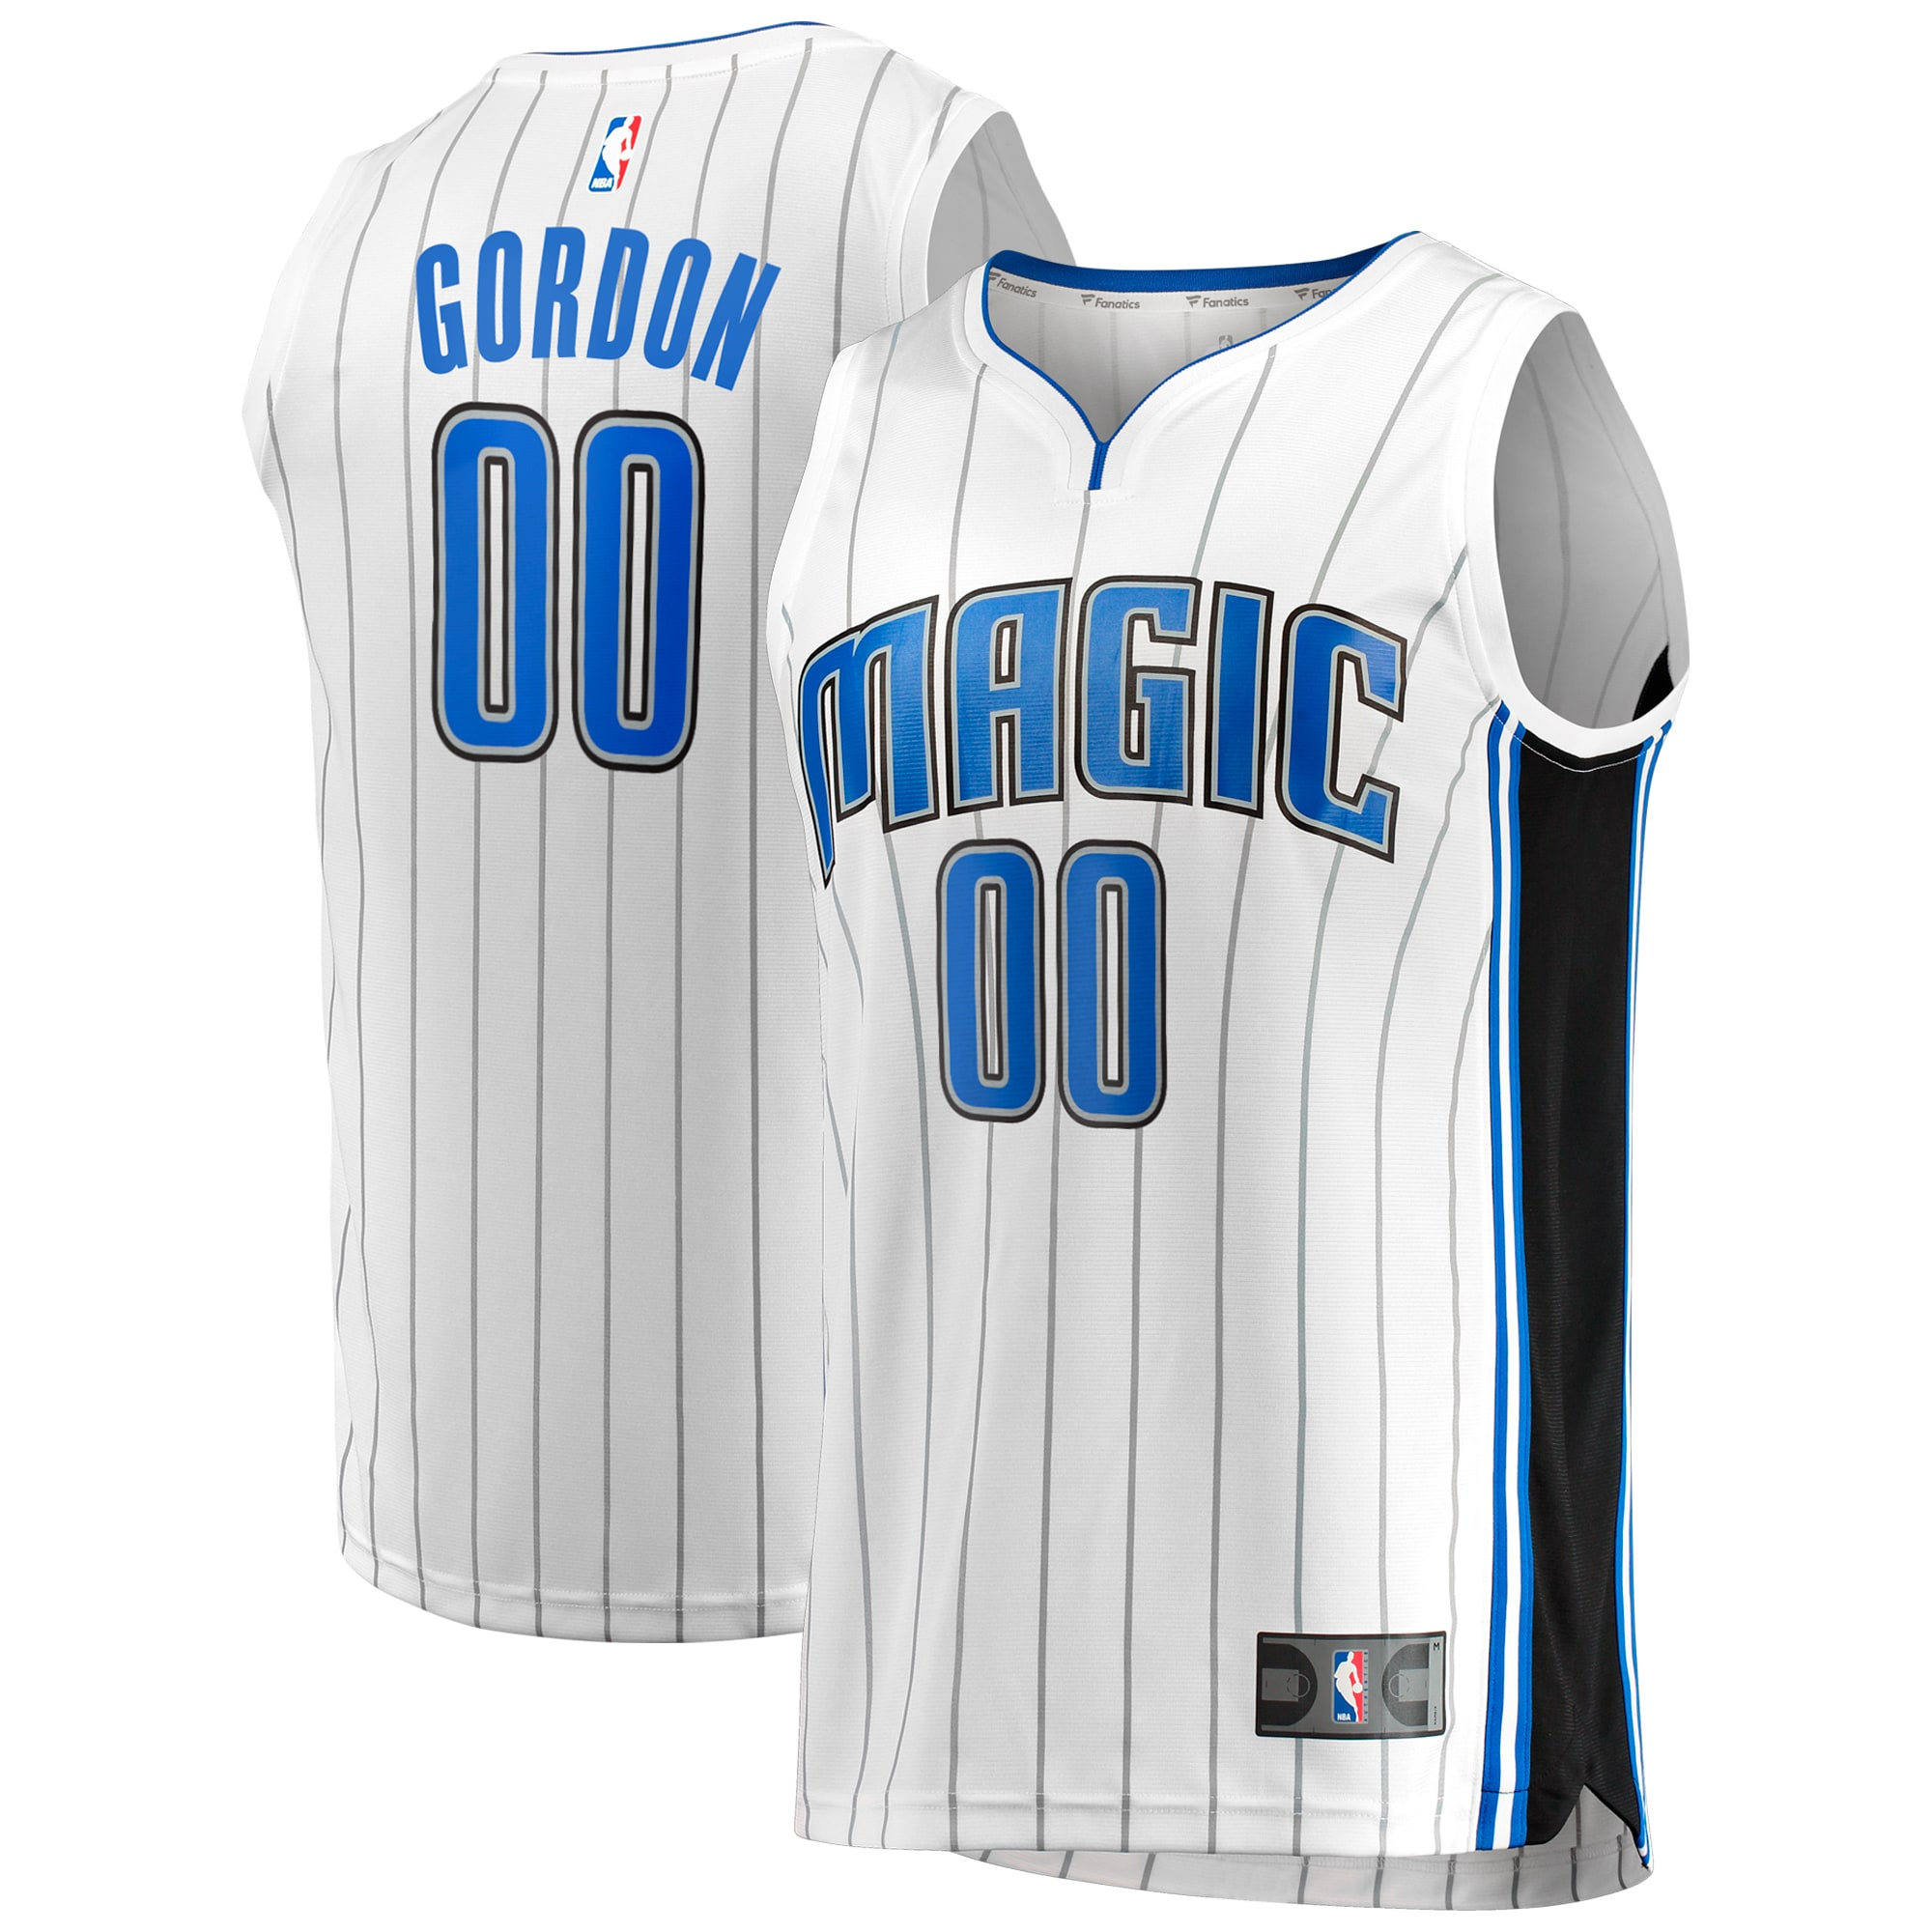 Aaron Gordon Orlando Magic Fanatics Branded Fast Break Jersey - Association Edition - White